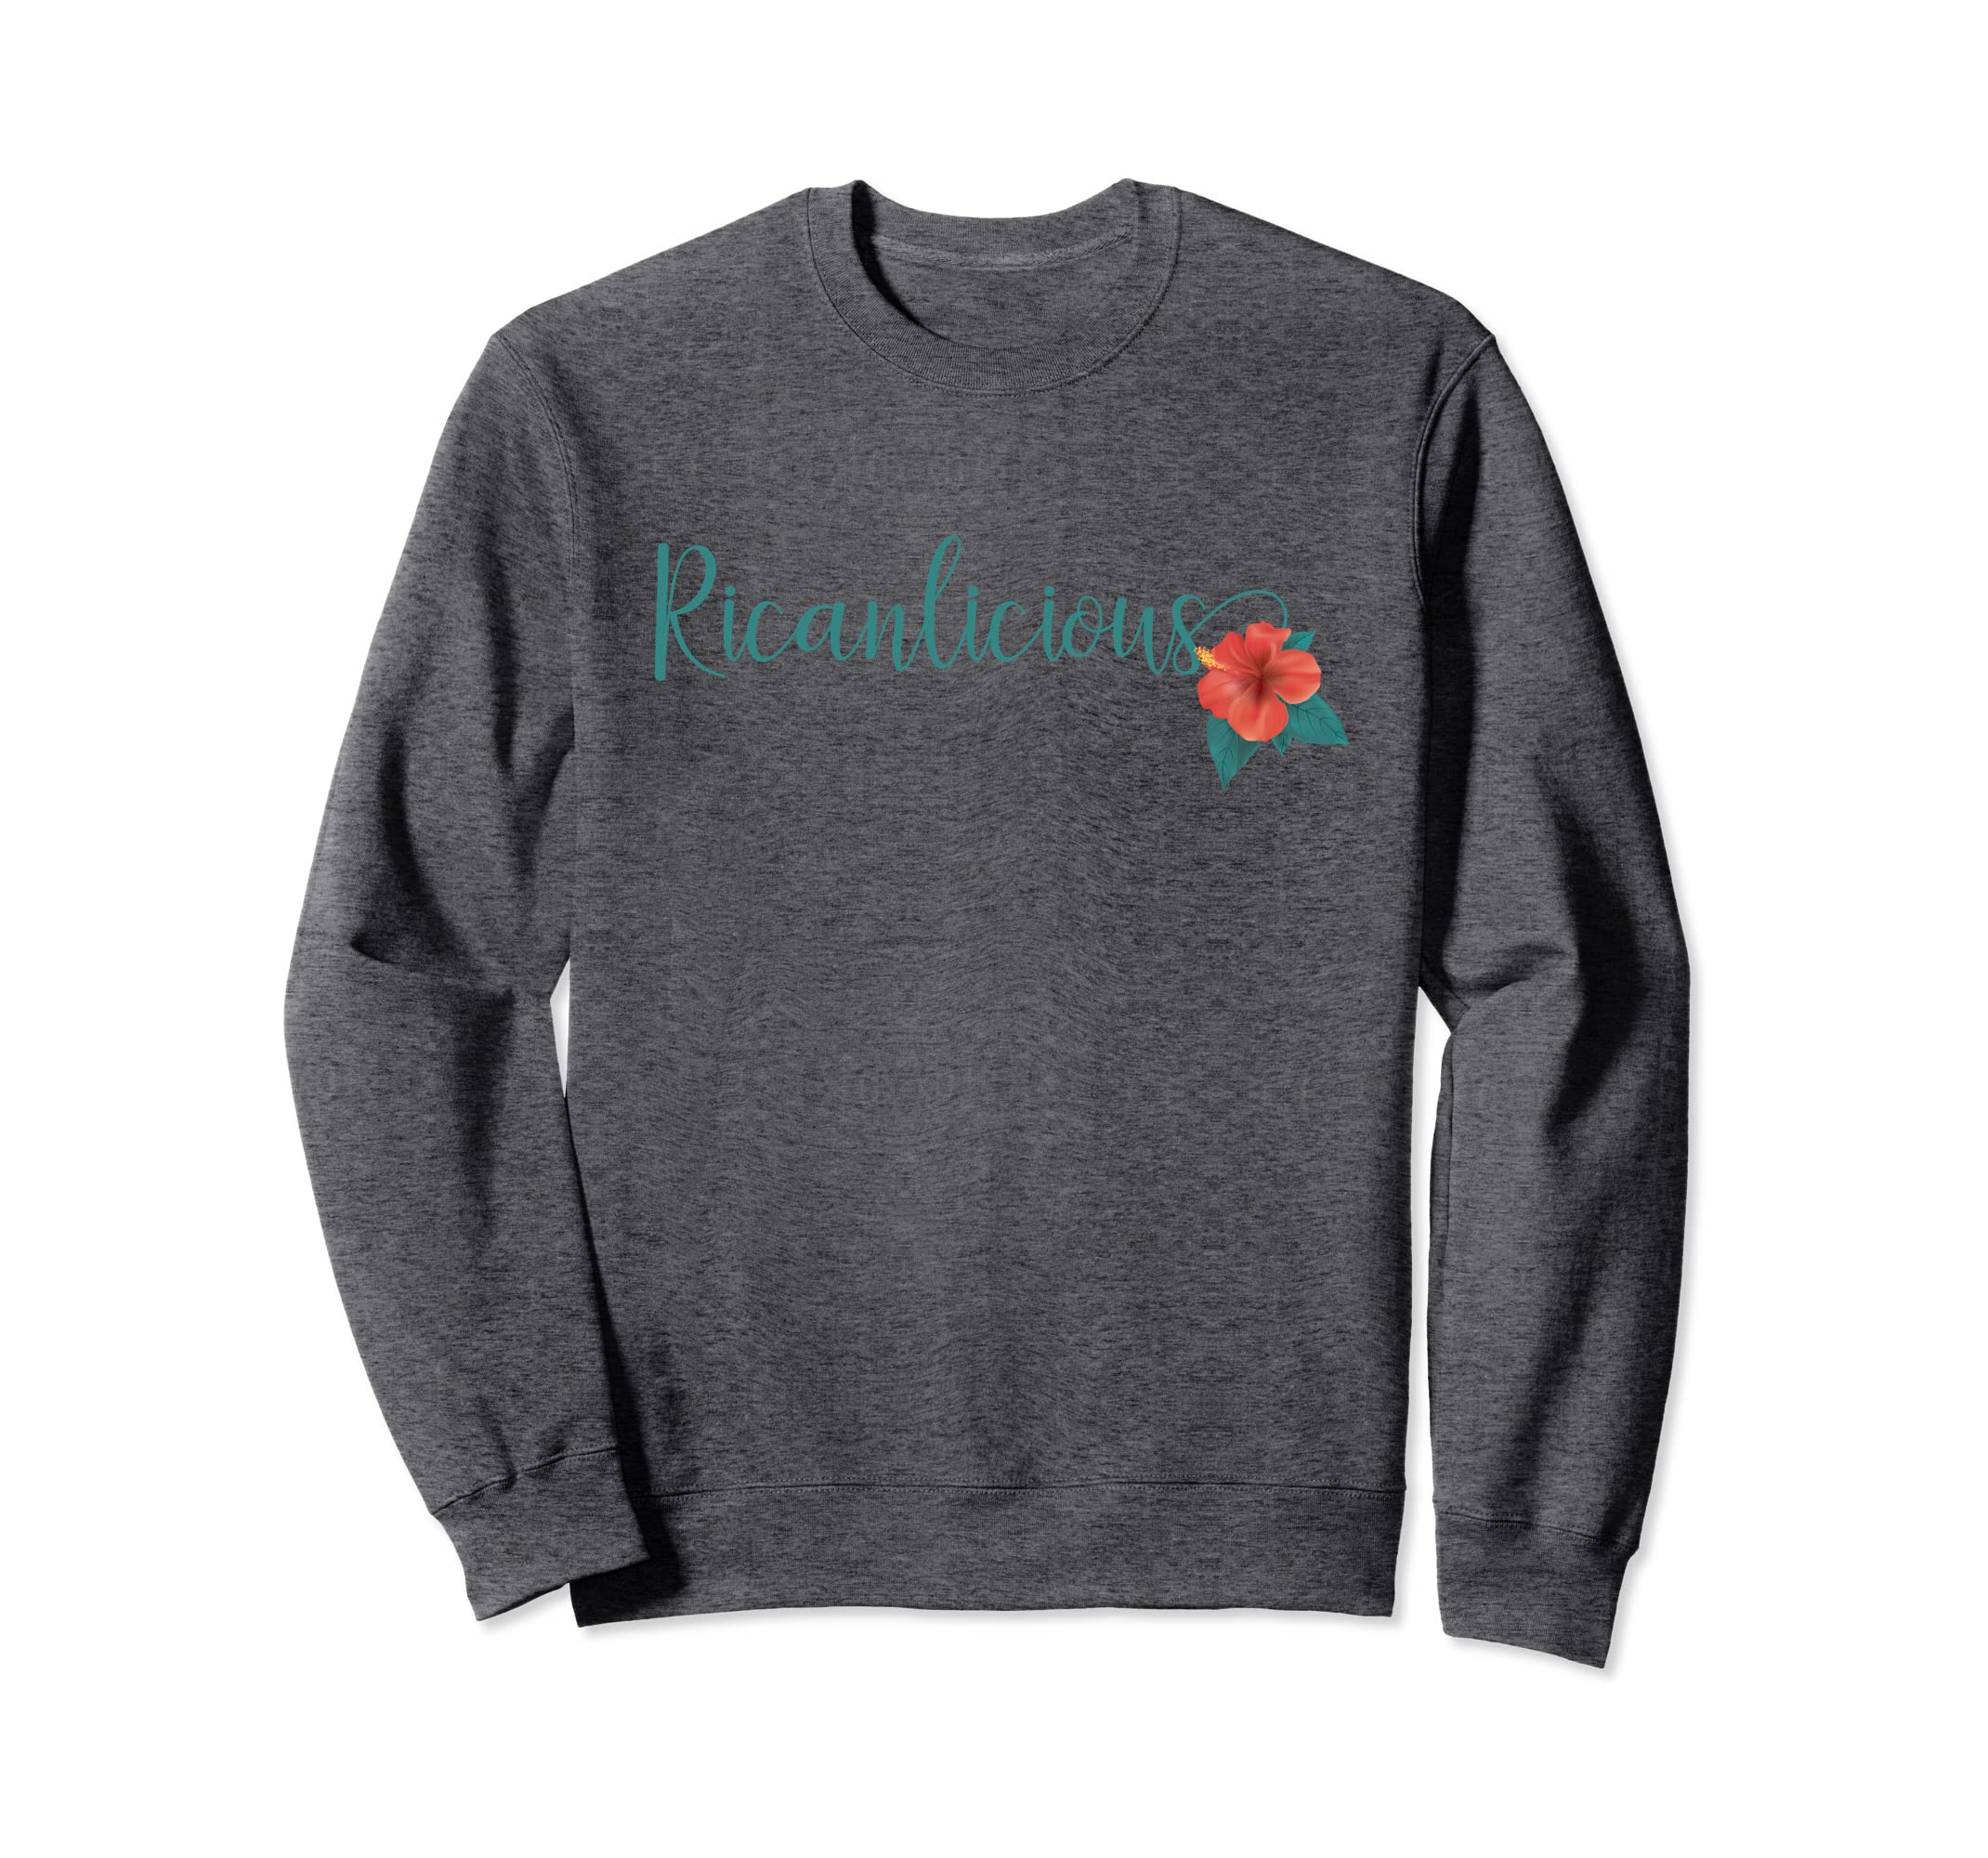 Amazon.com: Cute Puerto Rican Ricanlicious Hibiscus Flower Sweatshirt: Clothing